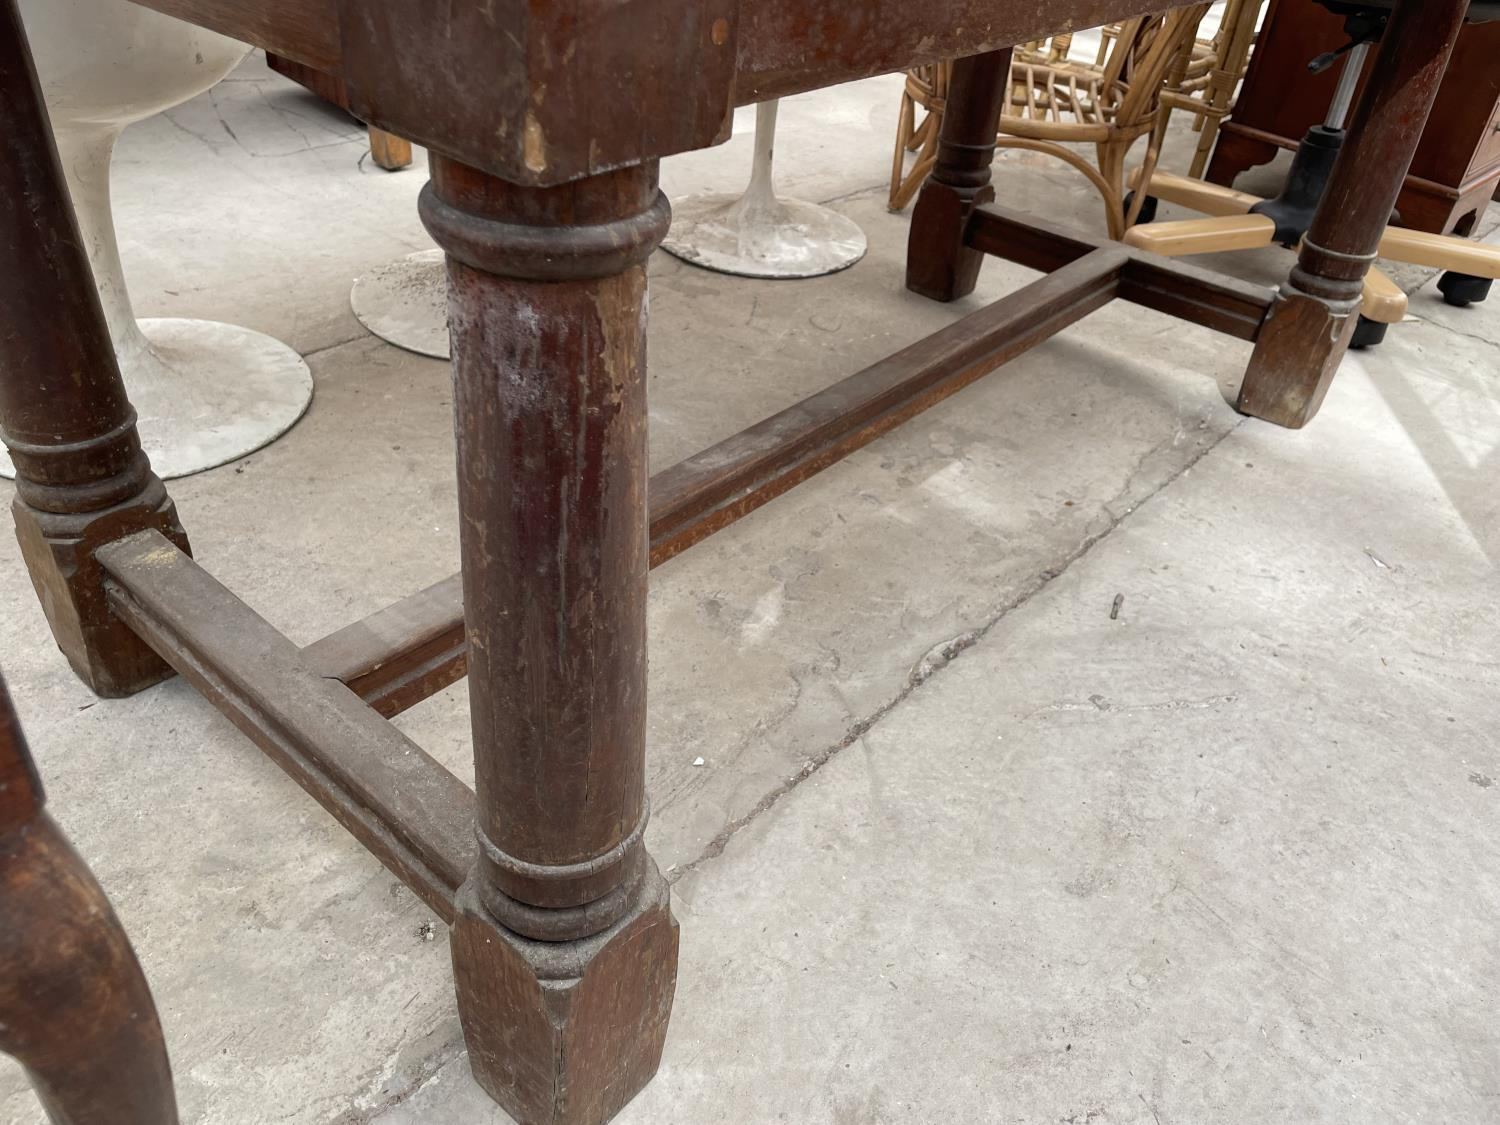 """A GEORGIAN STYLE OAK REFECTORY DINING TABLE ON TURNED TAPERED LEGS, 60X30"""" - Image 3 of 3"""